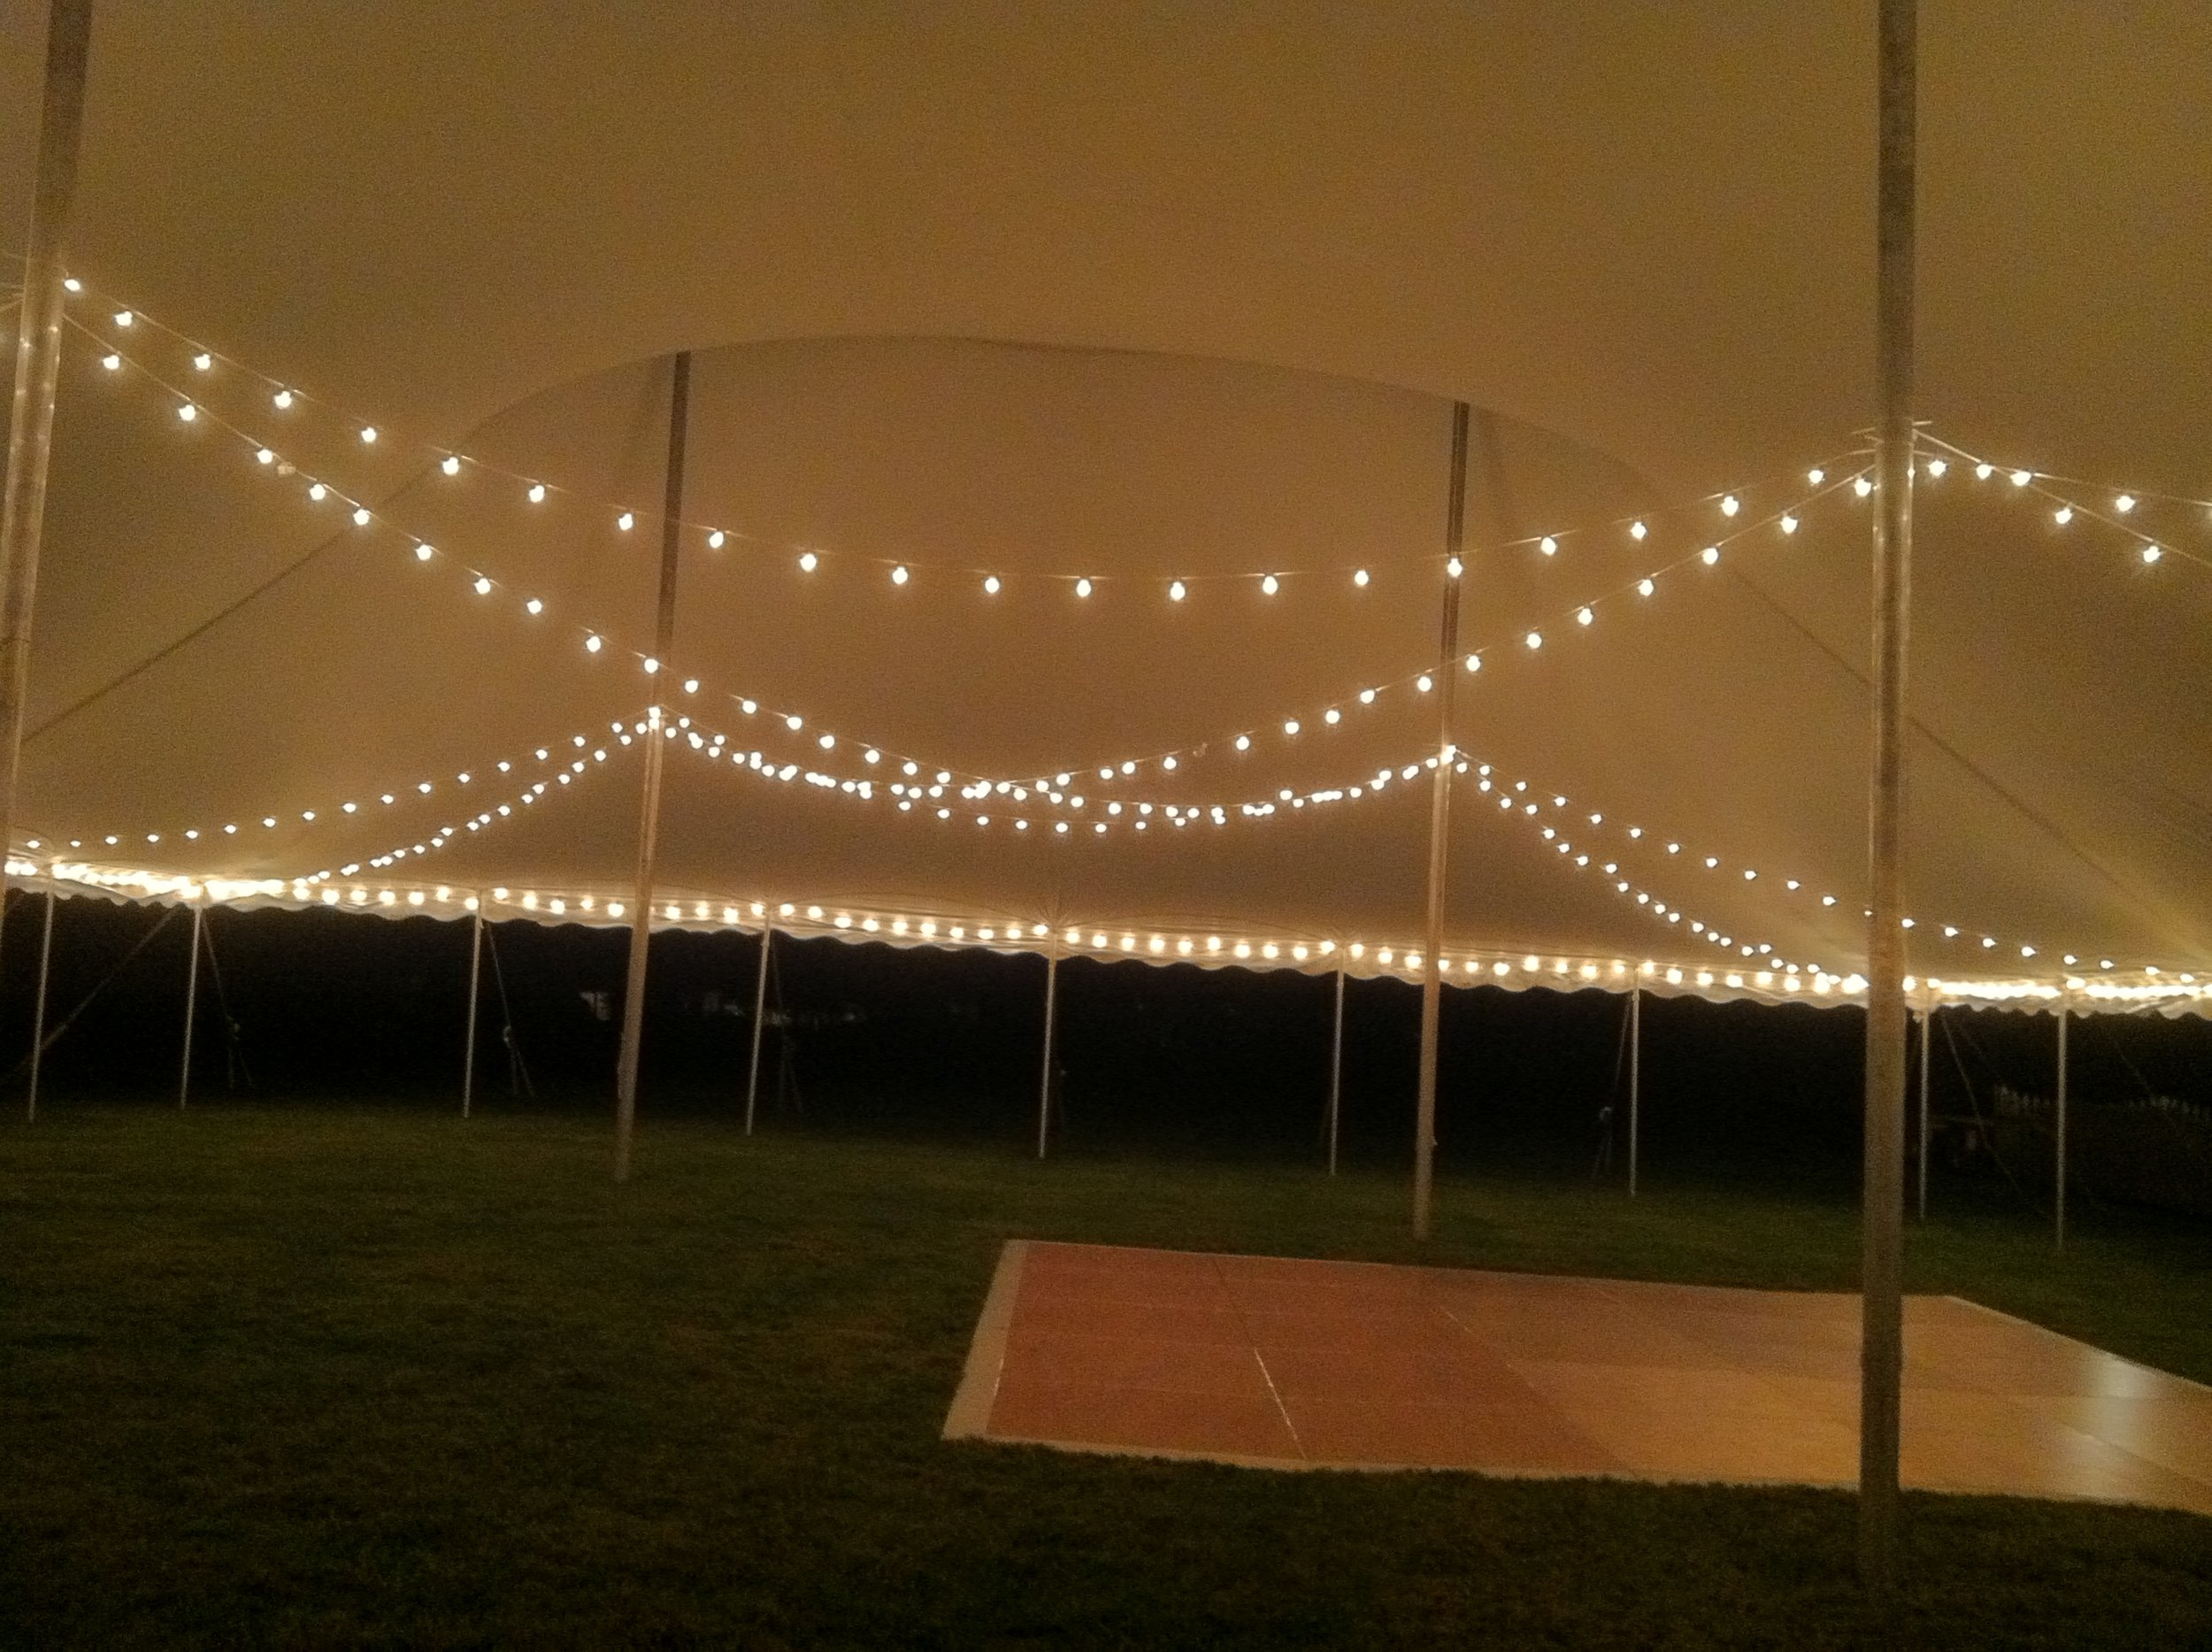 Cherry dance floor and cafe lighting for rent in Pine Grove, PA